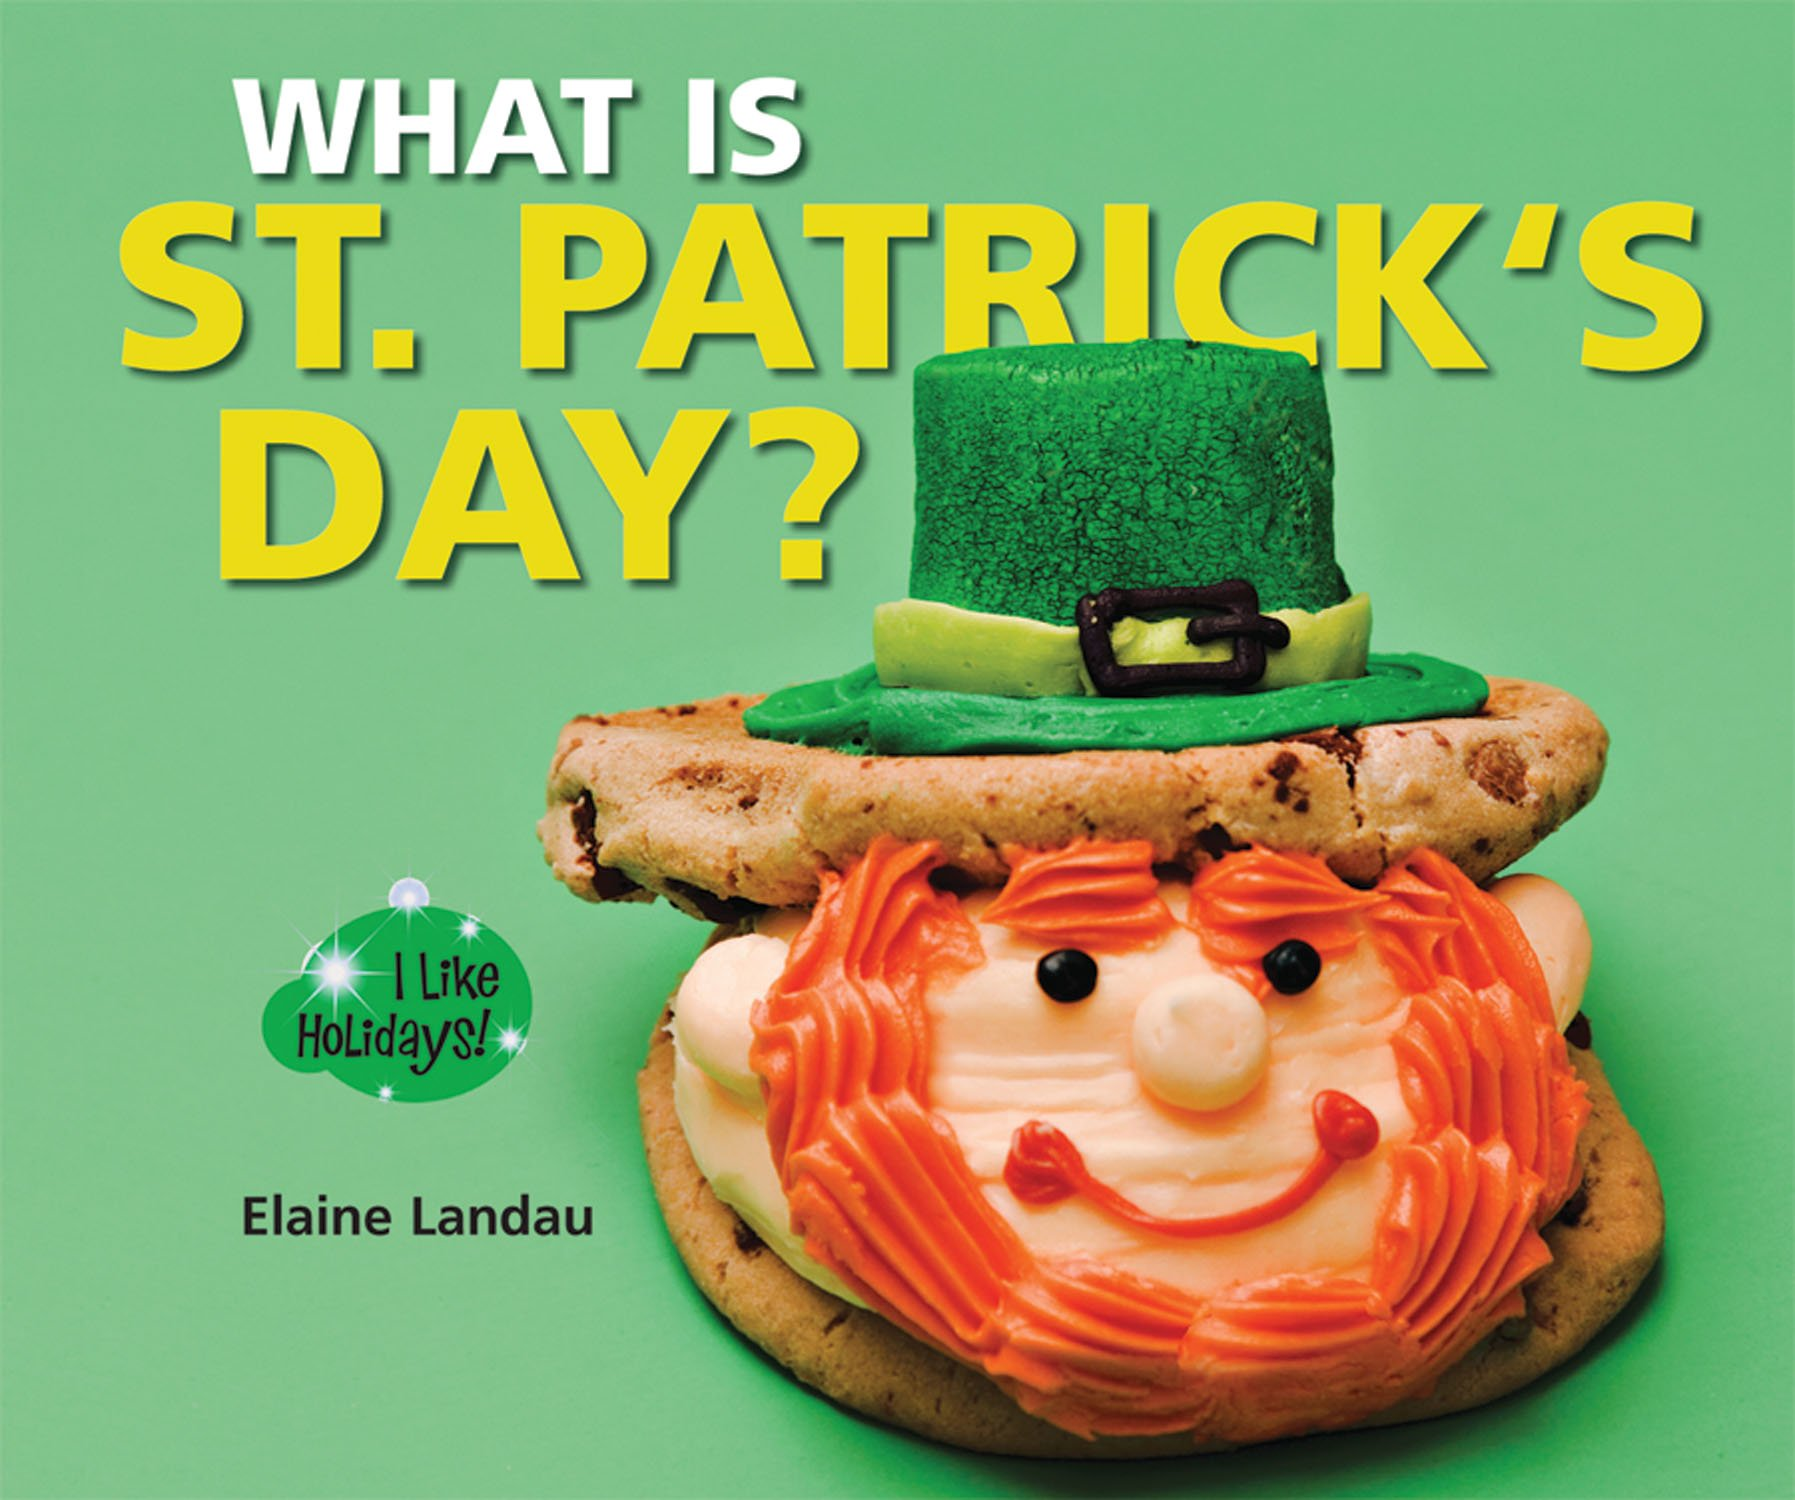 What Is St. Patrick's Day? (I Like Holidays!)